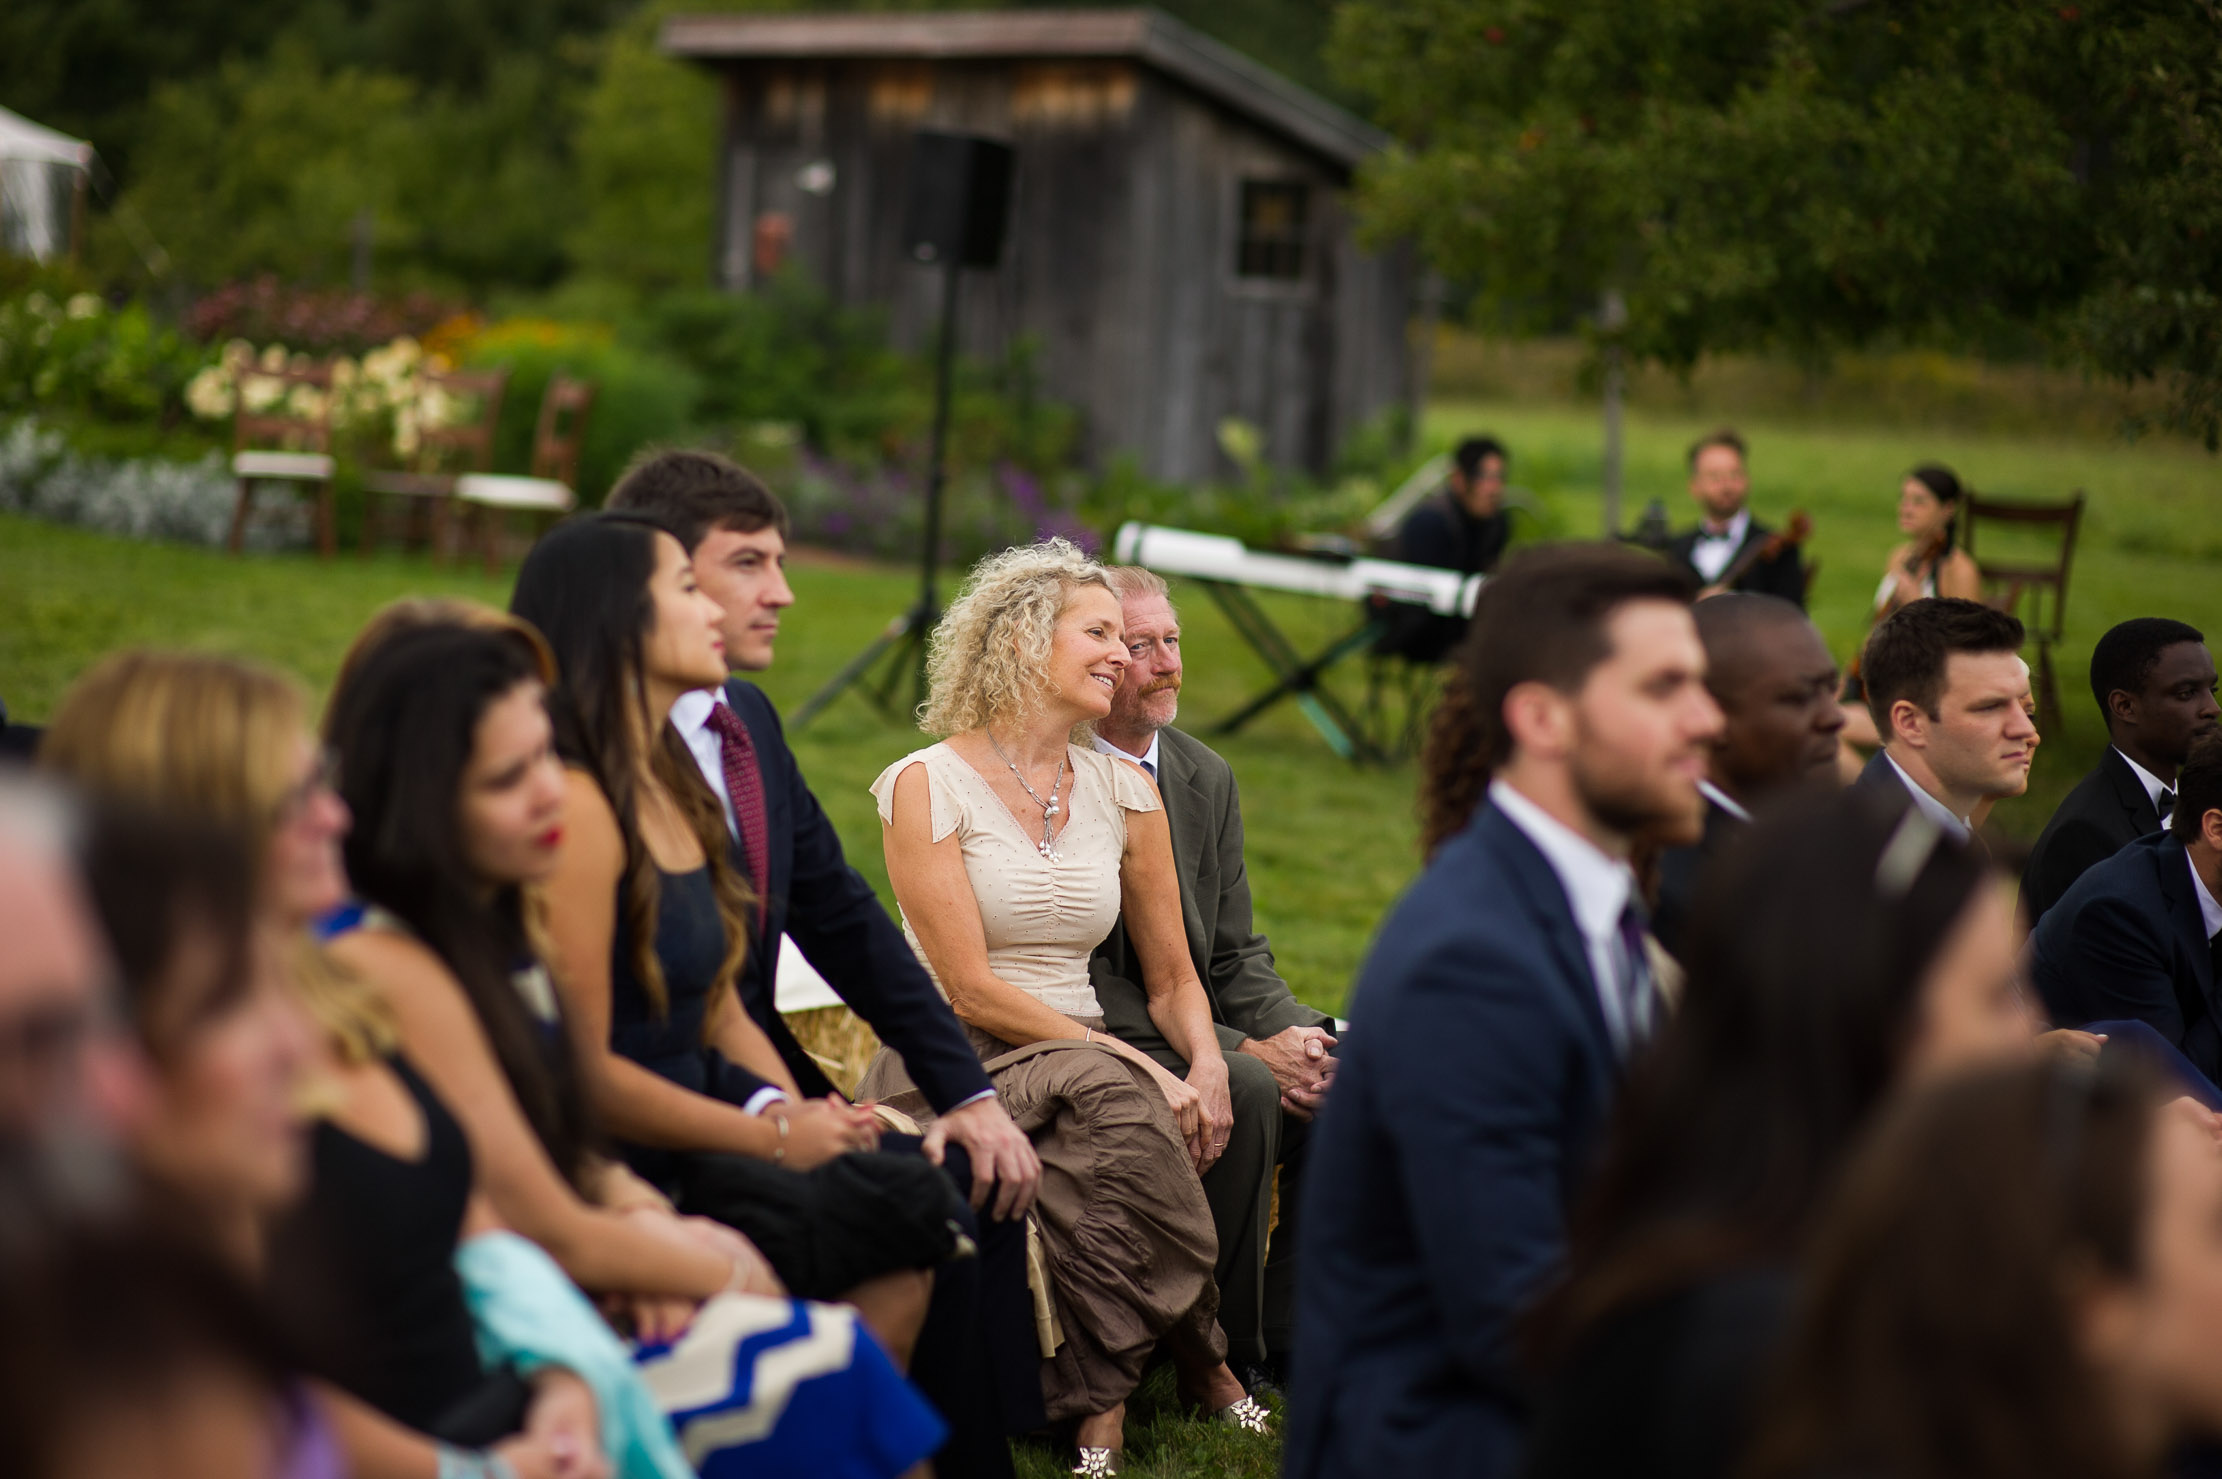 VERMONT-BARN-NYC-WEDDING-PHOTOGRAPHER-1067.jpg